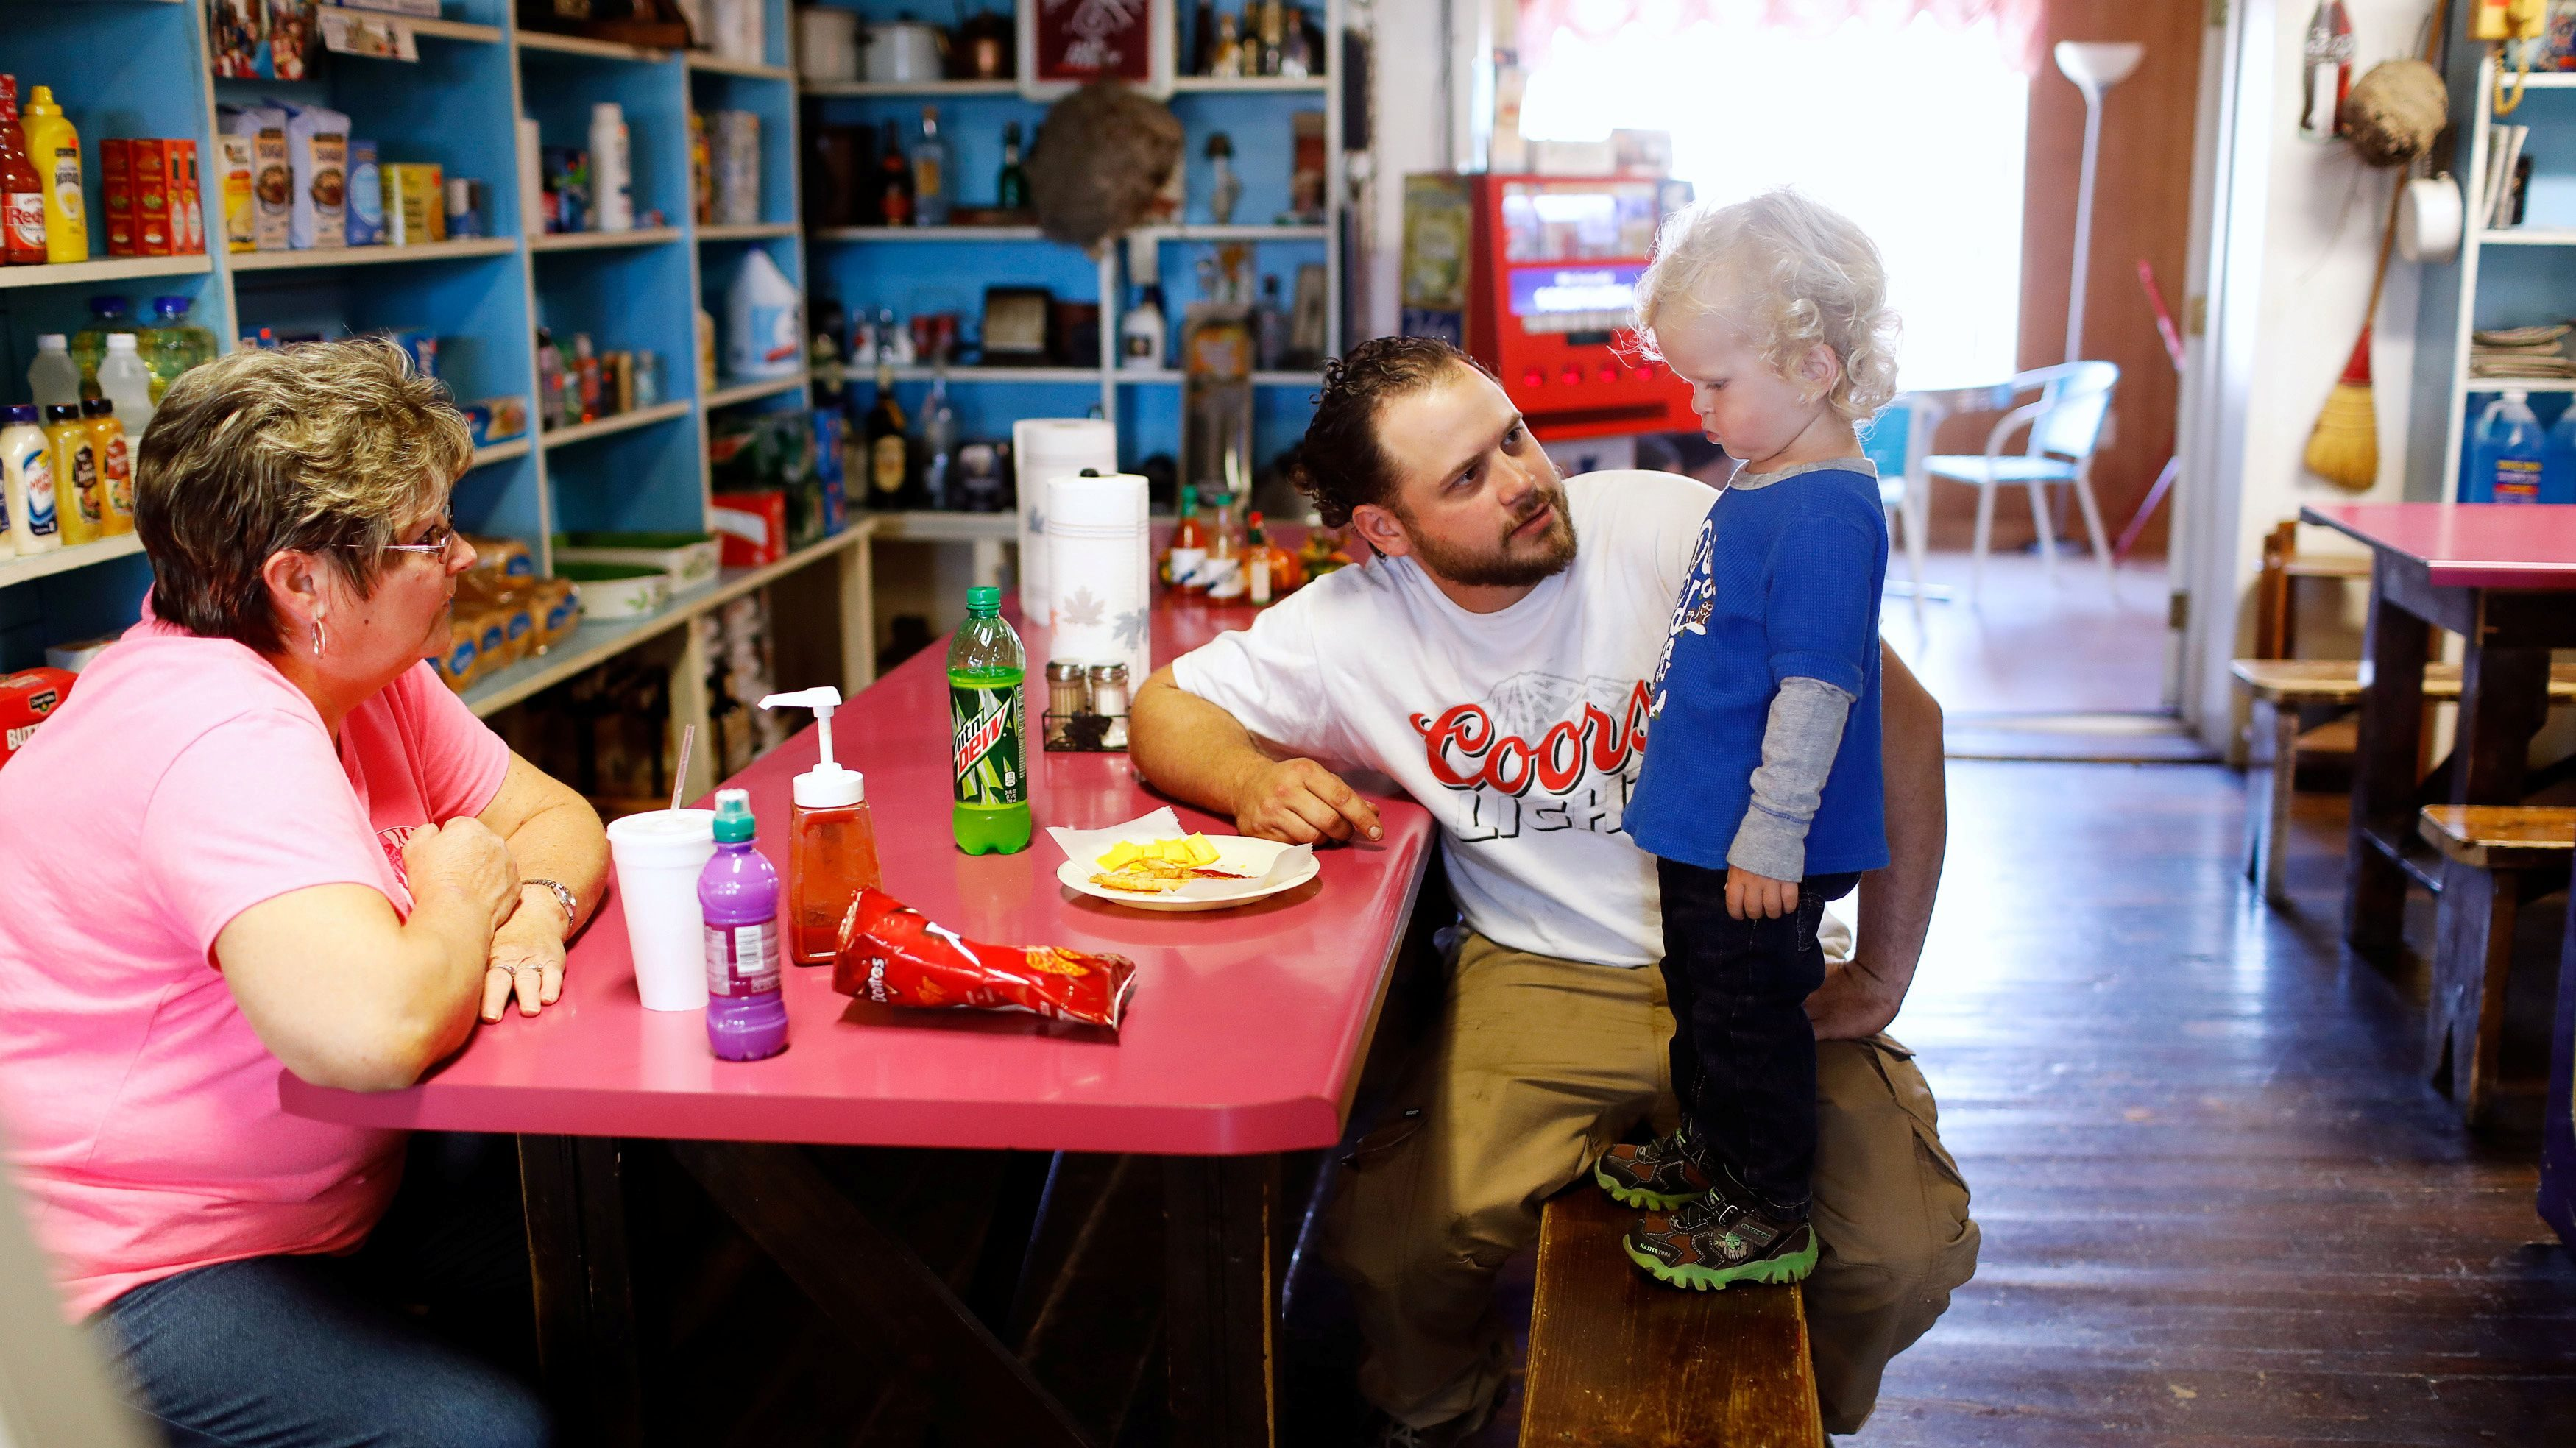 A father encourages his child to eat.